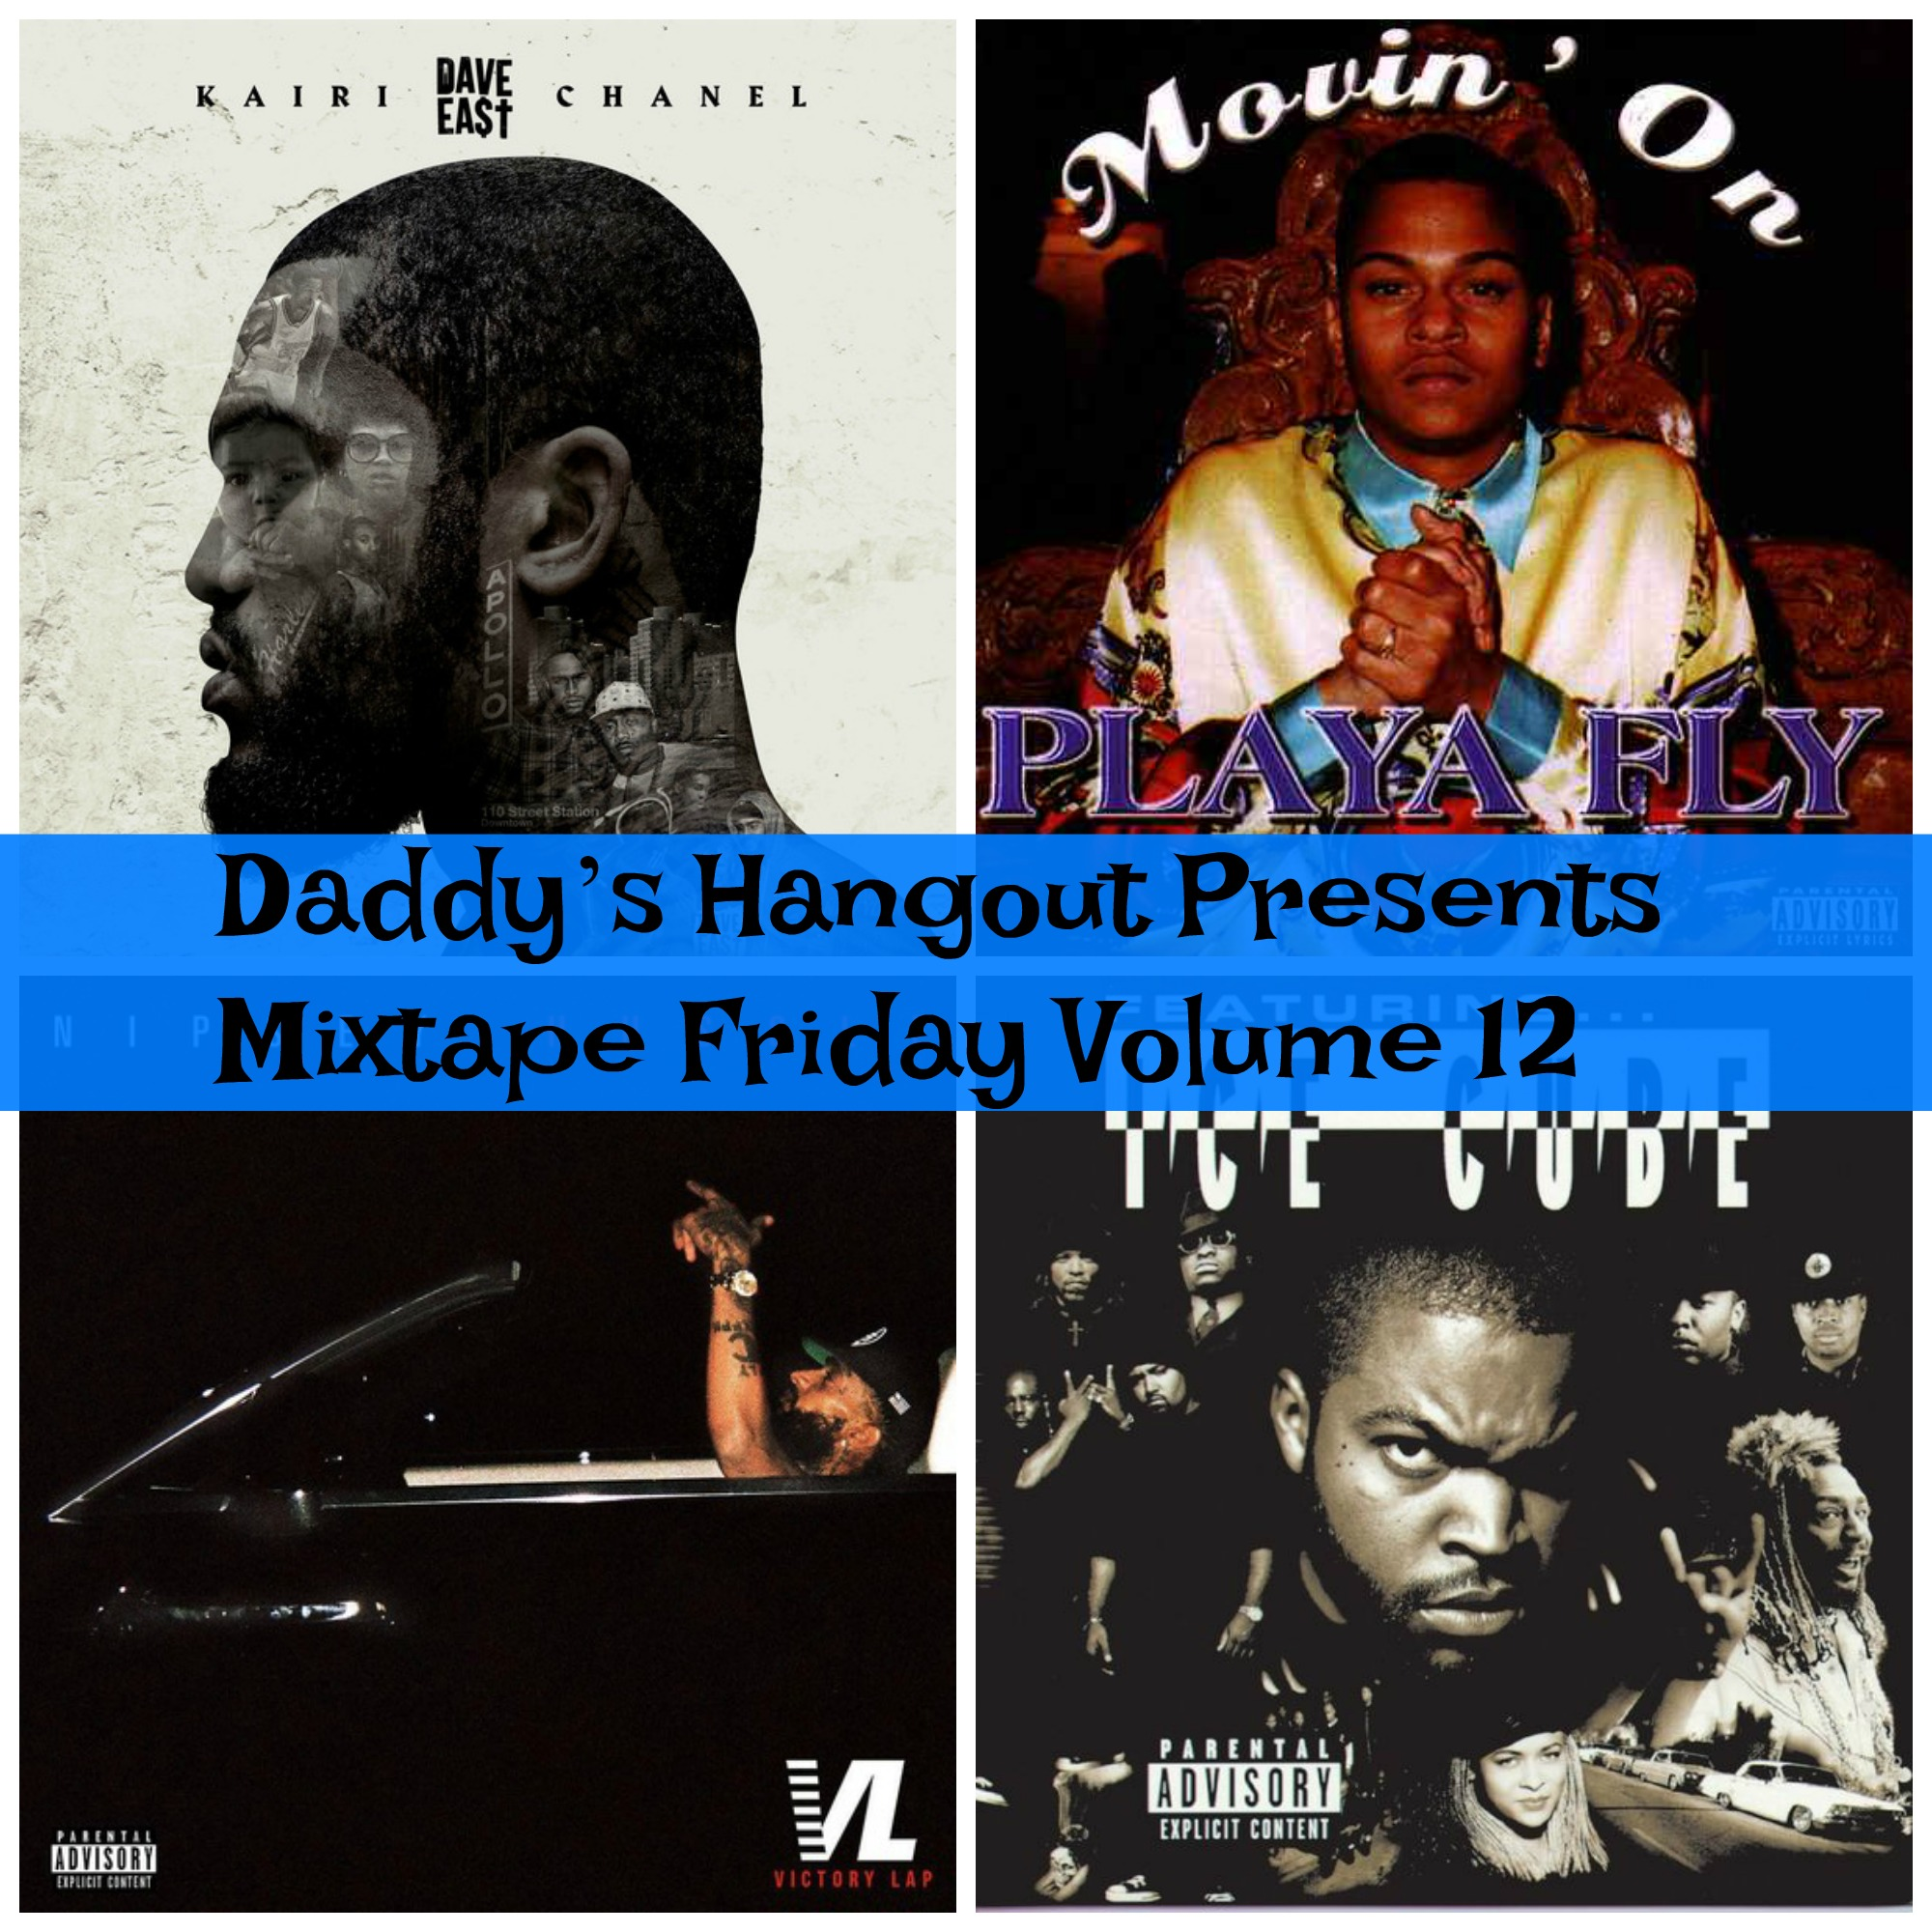 Daddy's Hangout Presents Mixtape Friday Volume 12